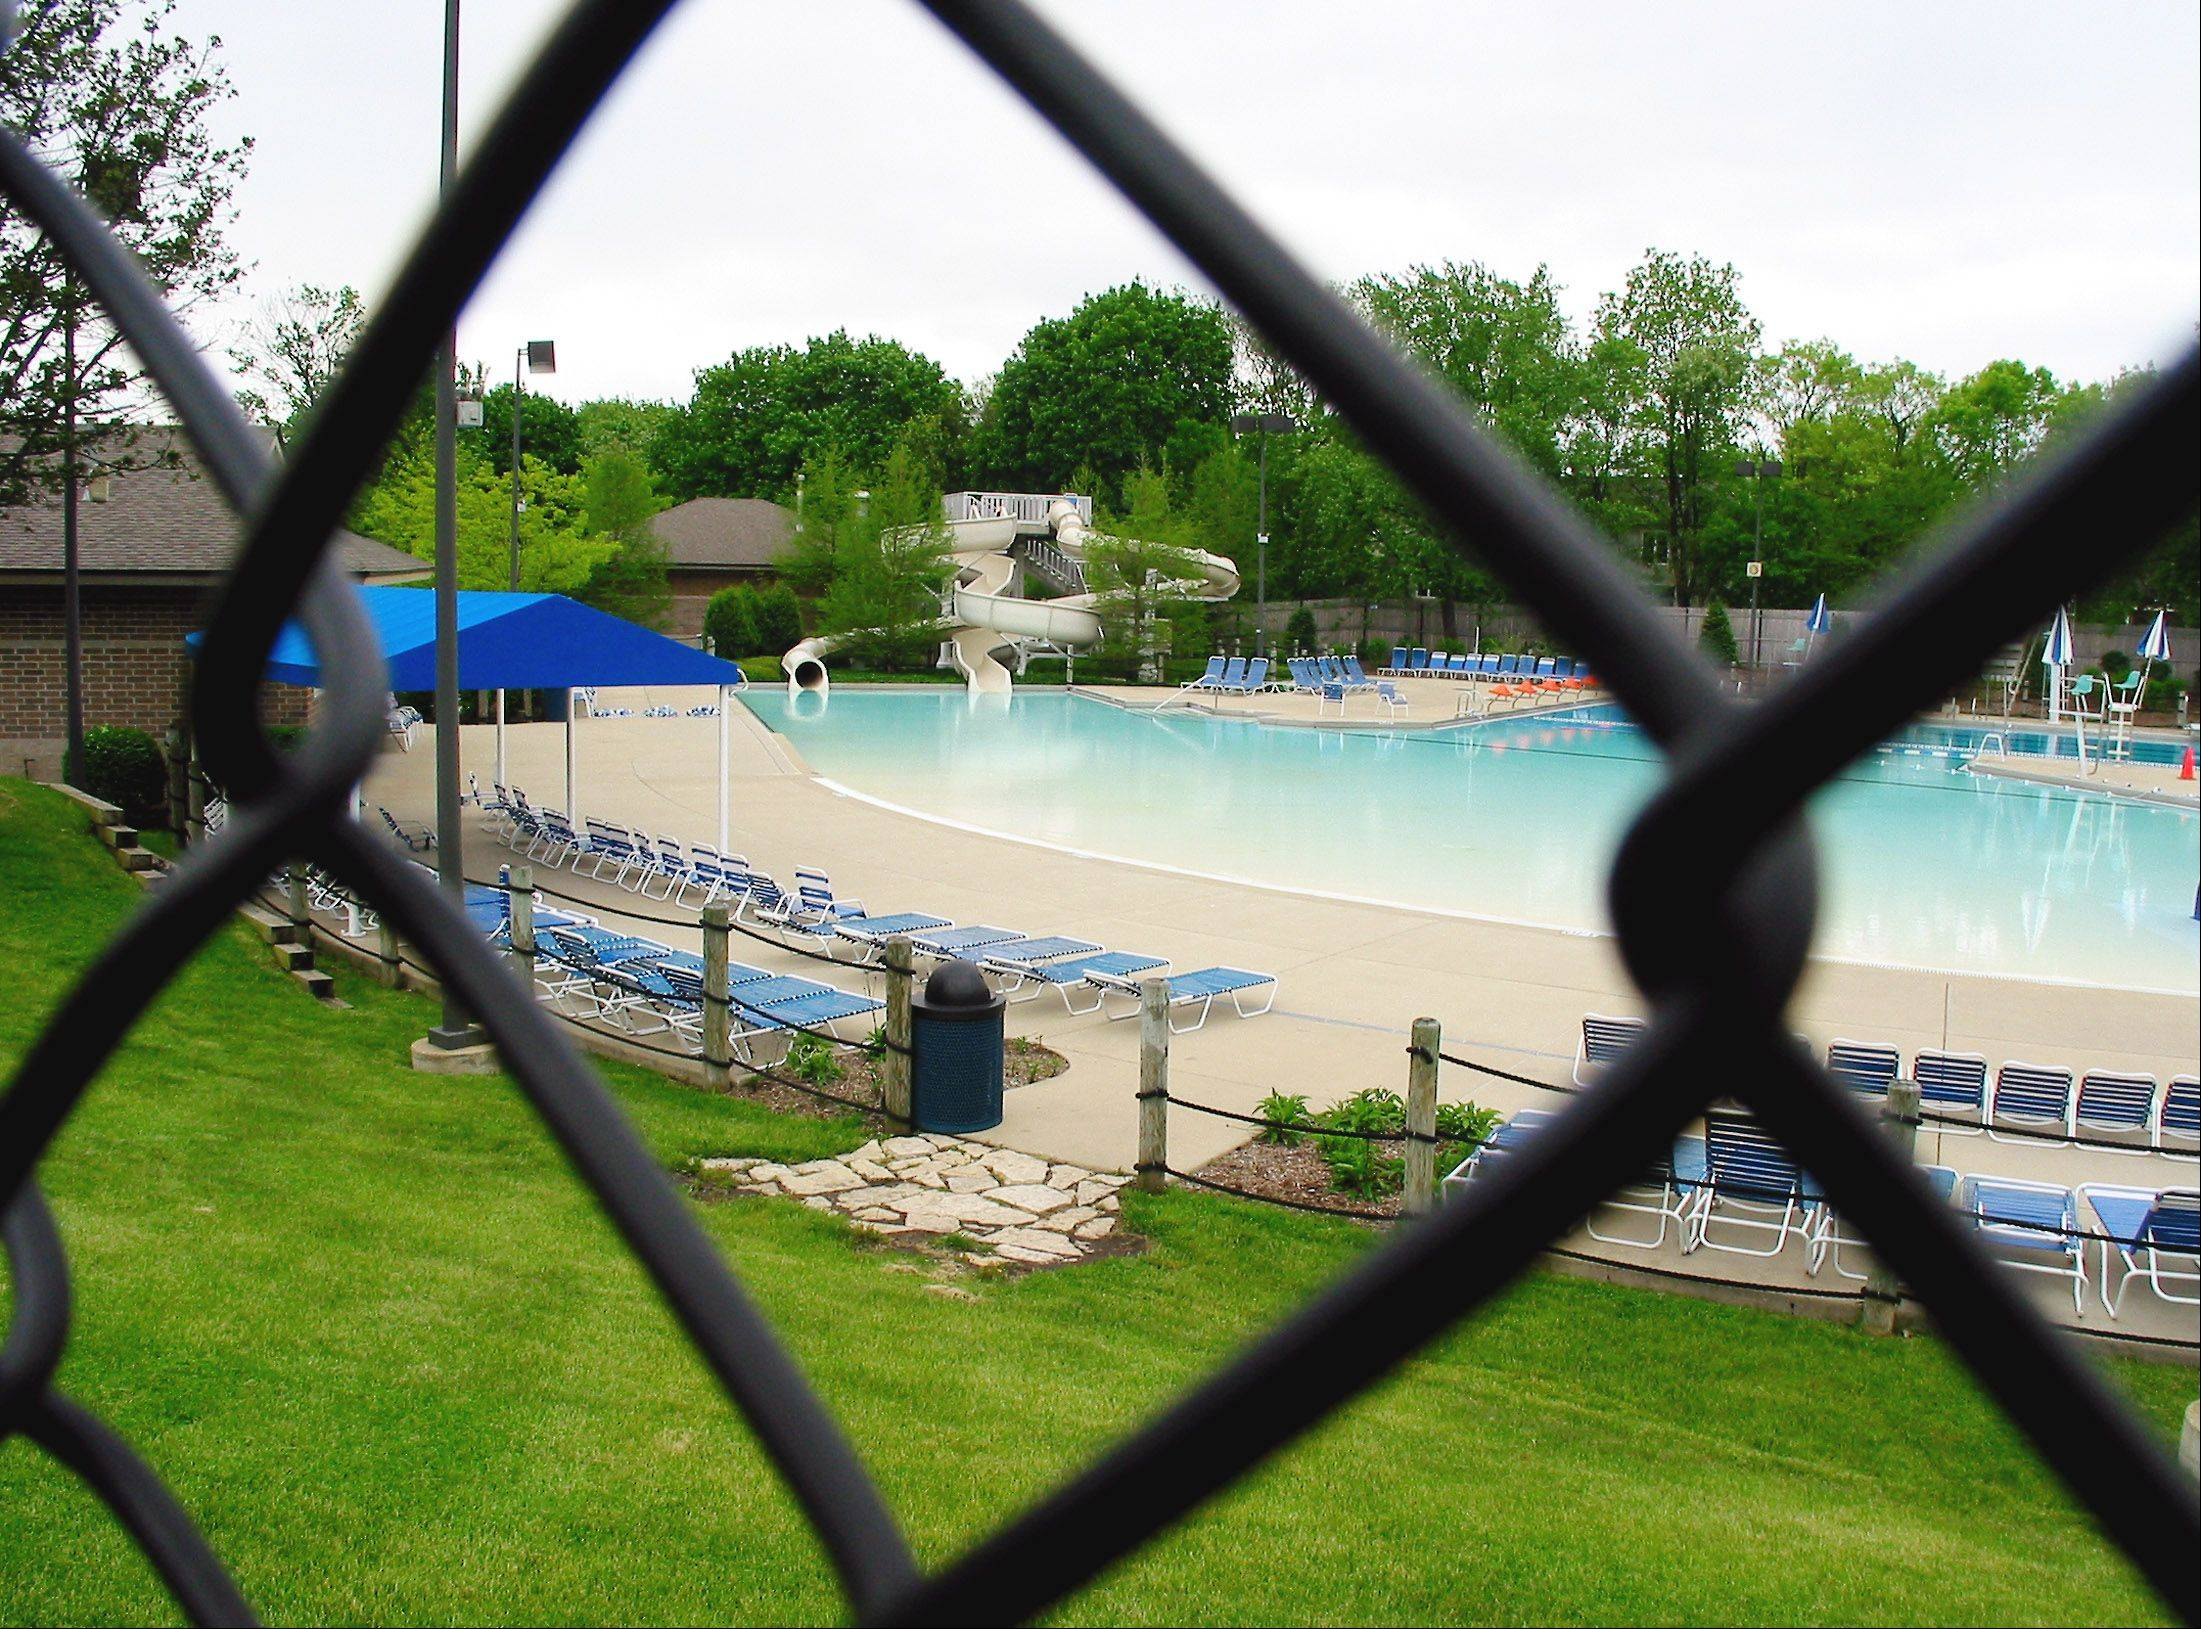 A power outage late Sunday afternoon forced Sunset Pool in Glen Ellyn to close, but it had reopened by Monday afternoon.